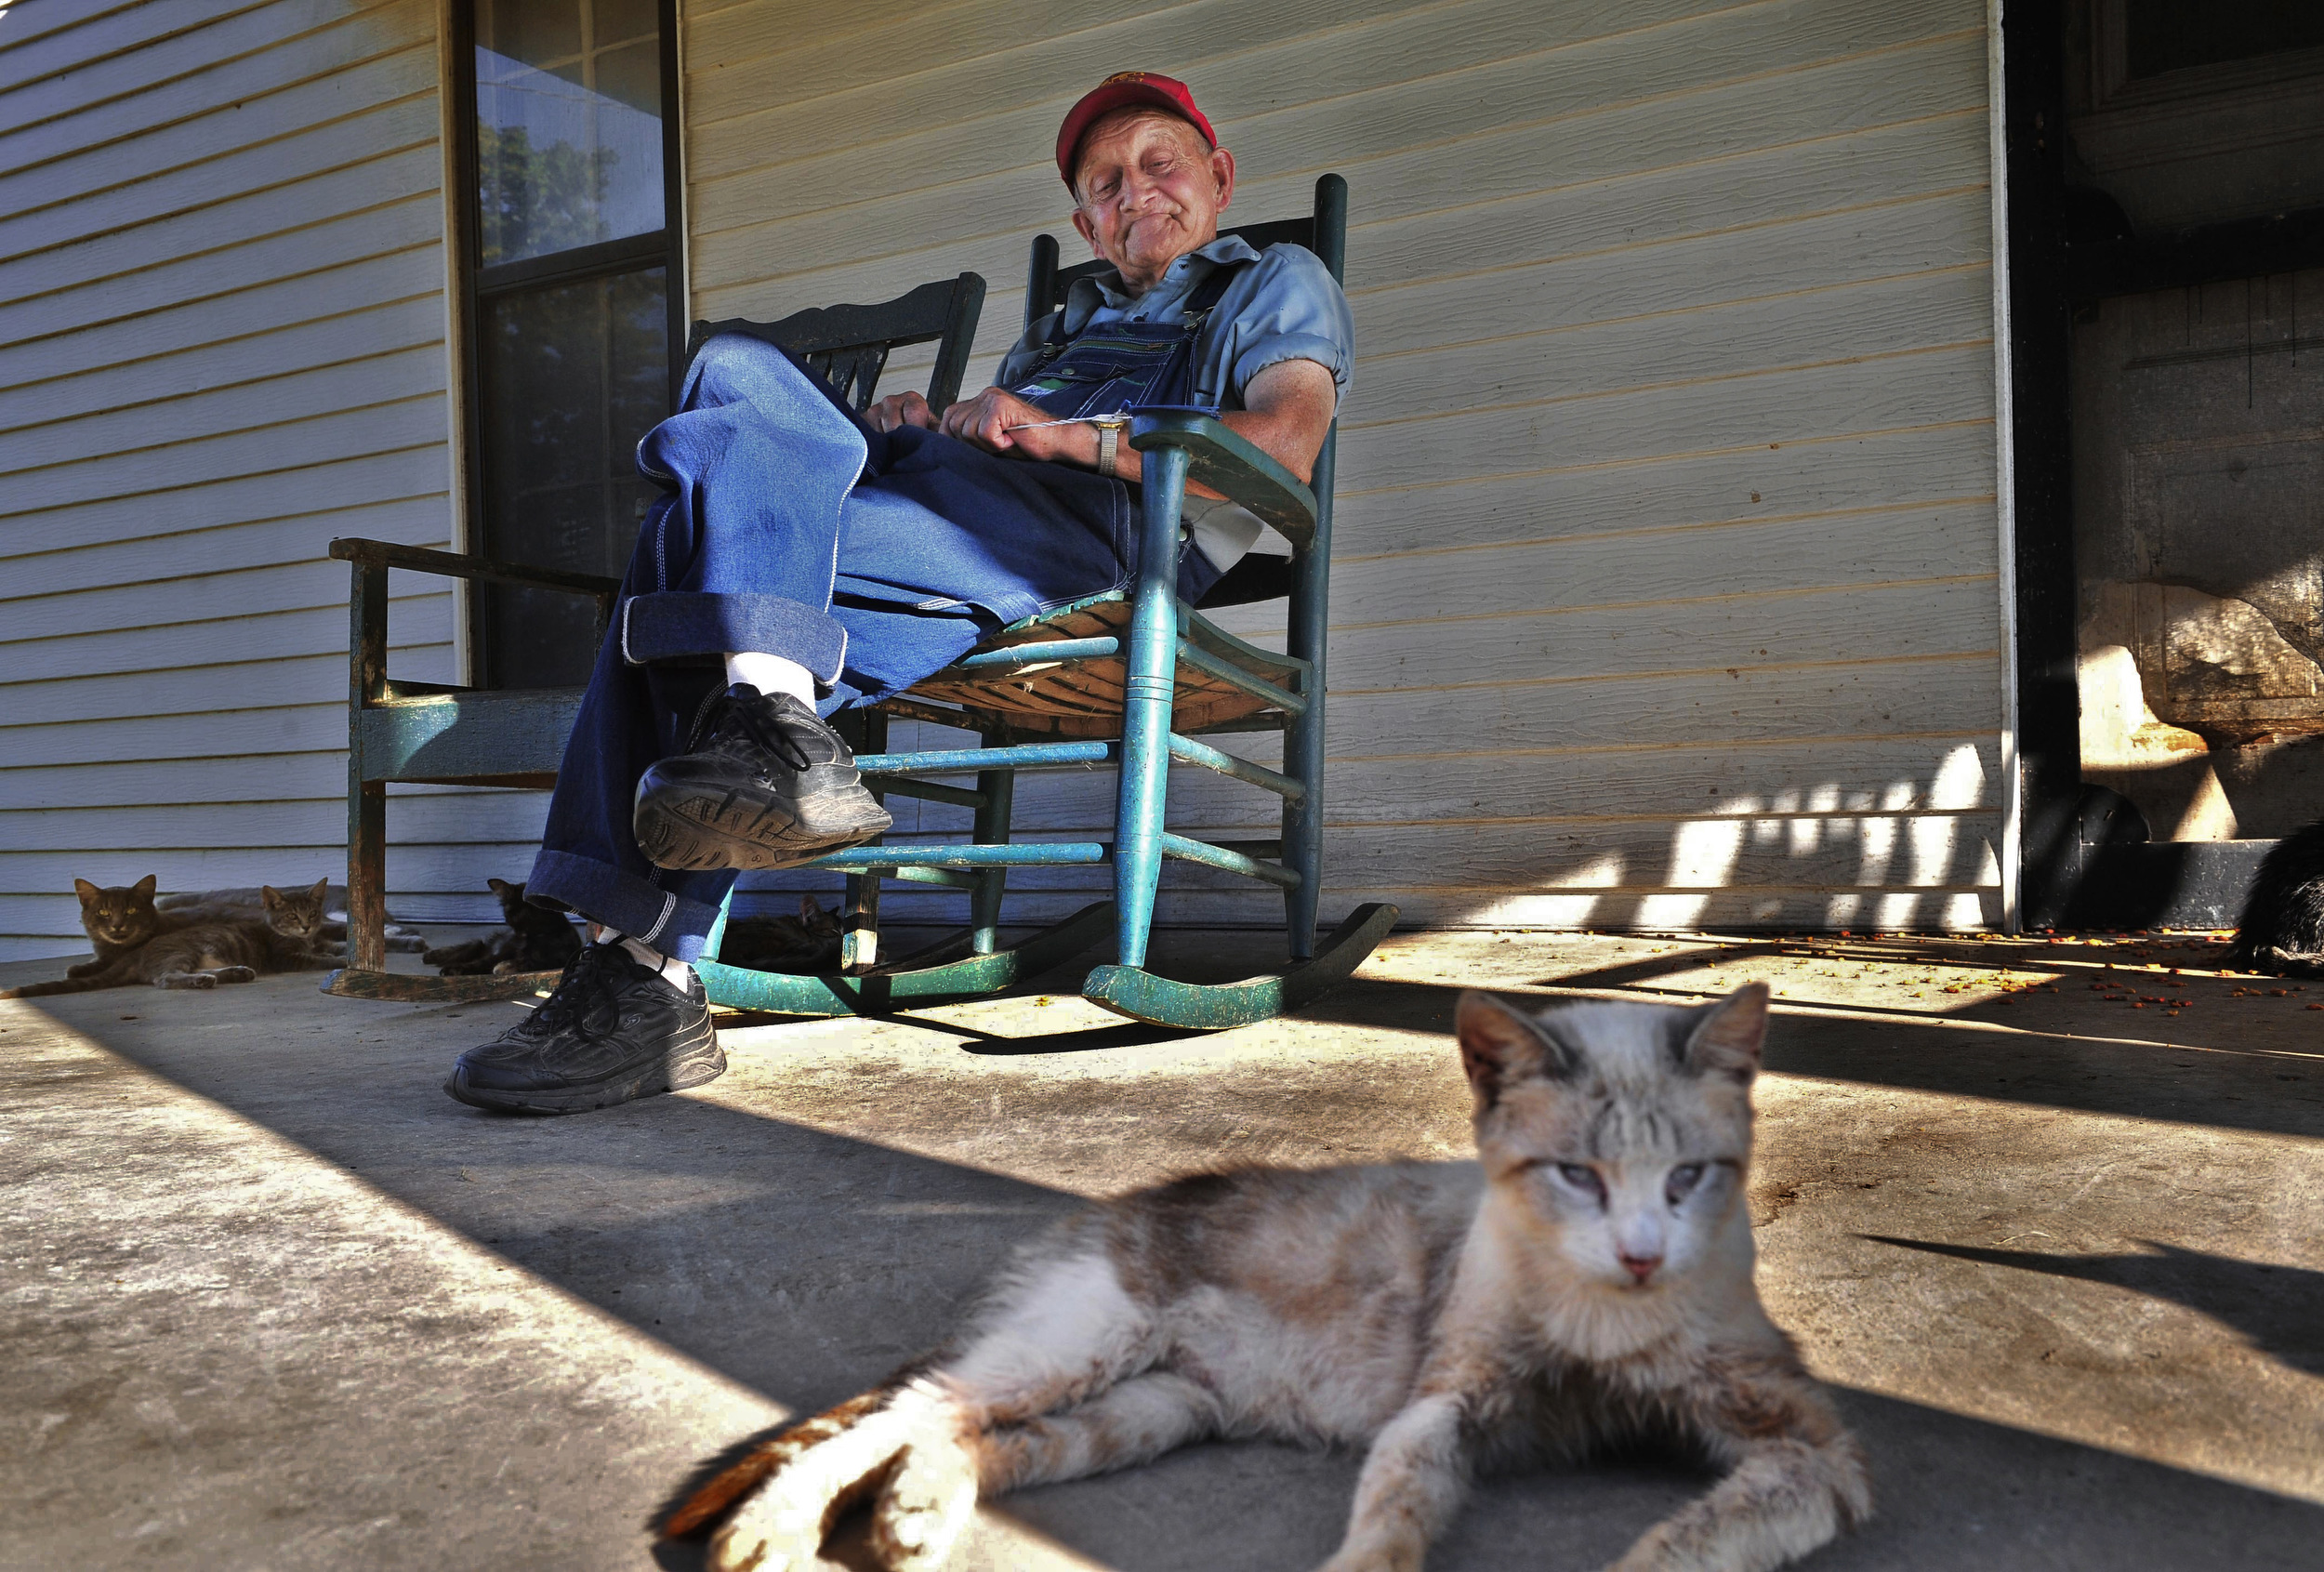 Forrest Savley, 81, was born in a log cabin down the street from the house where he lives with many cats in Coopertown, Tenn.   Savley did not approve of Coopertown becoming a city.